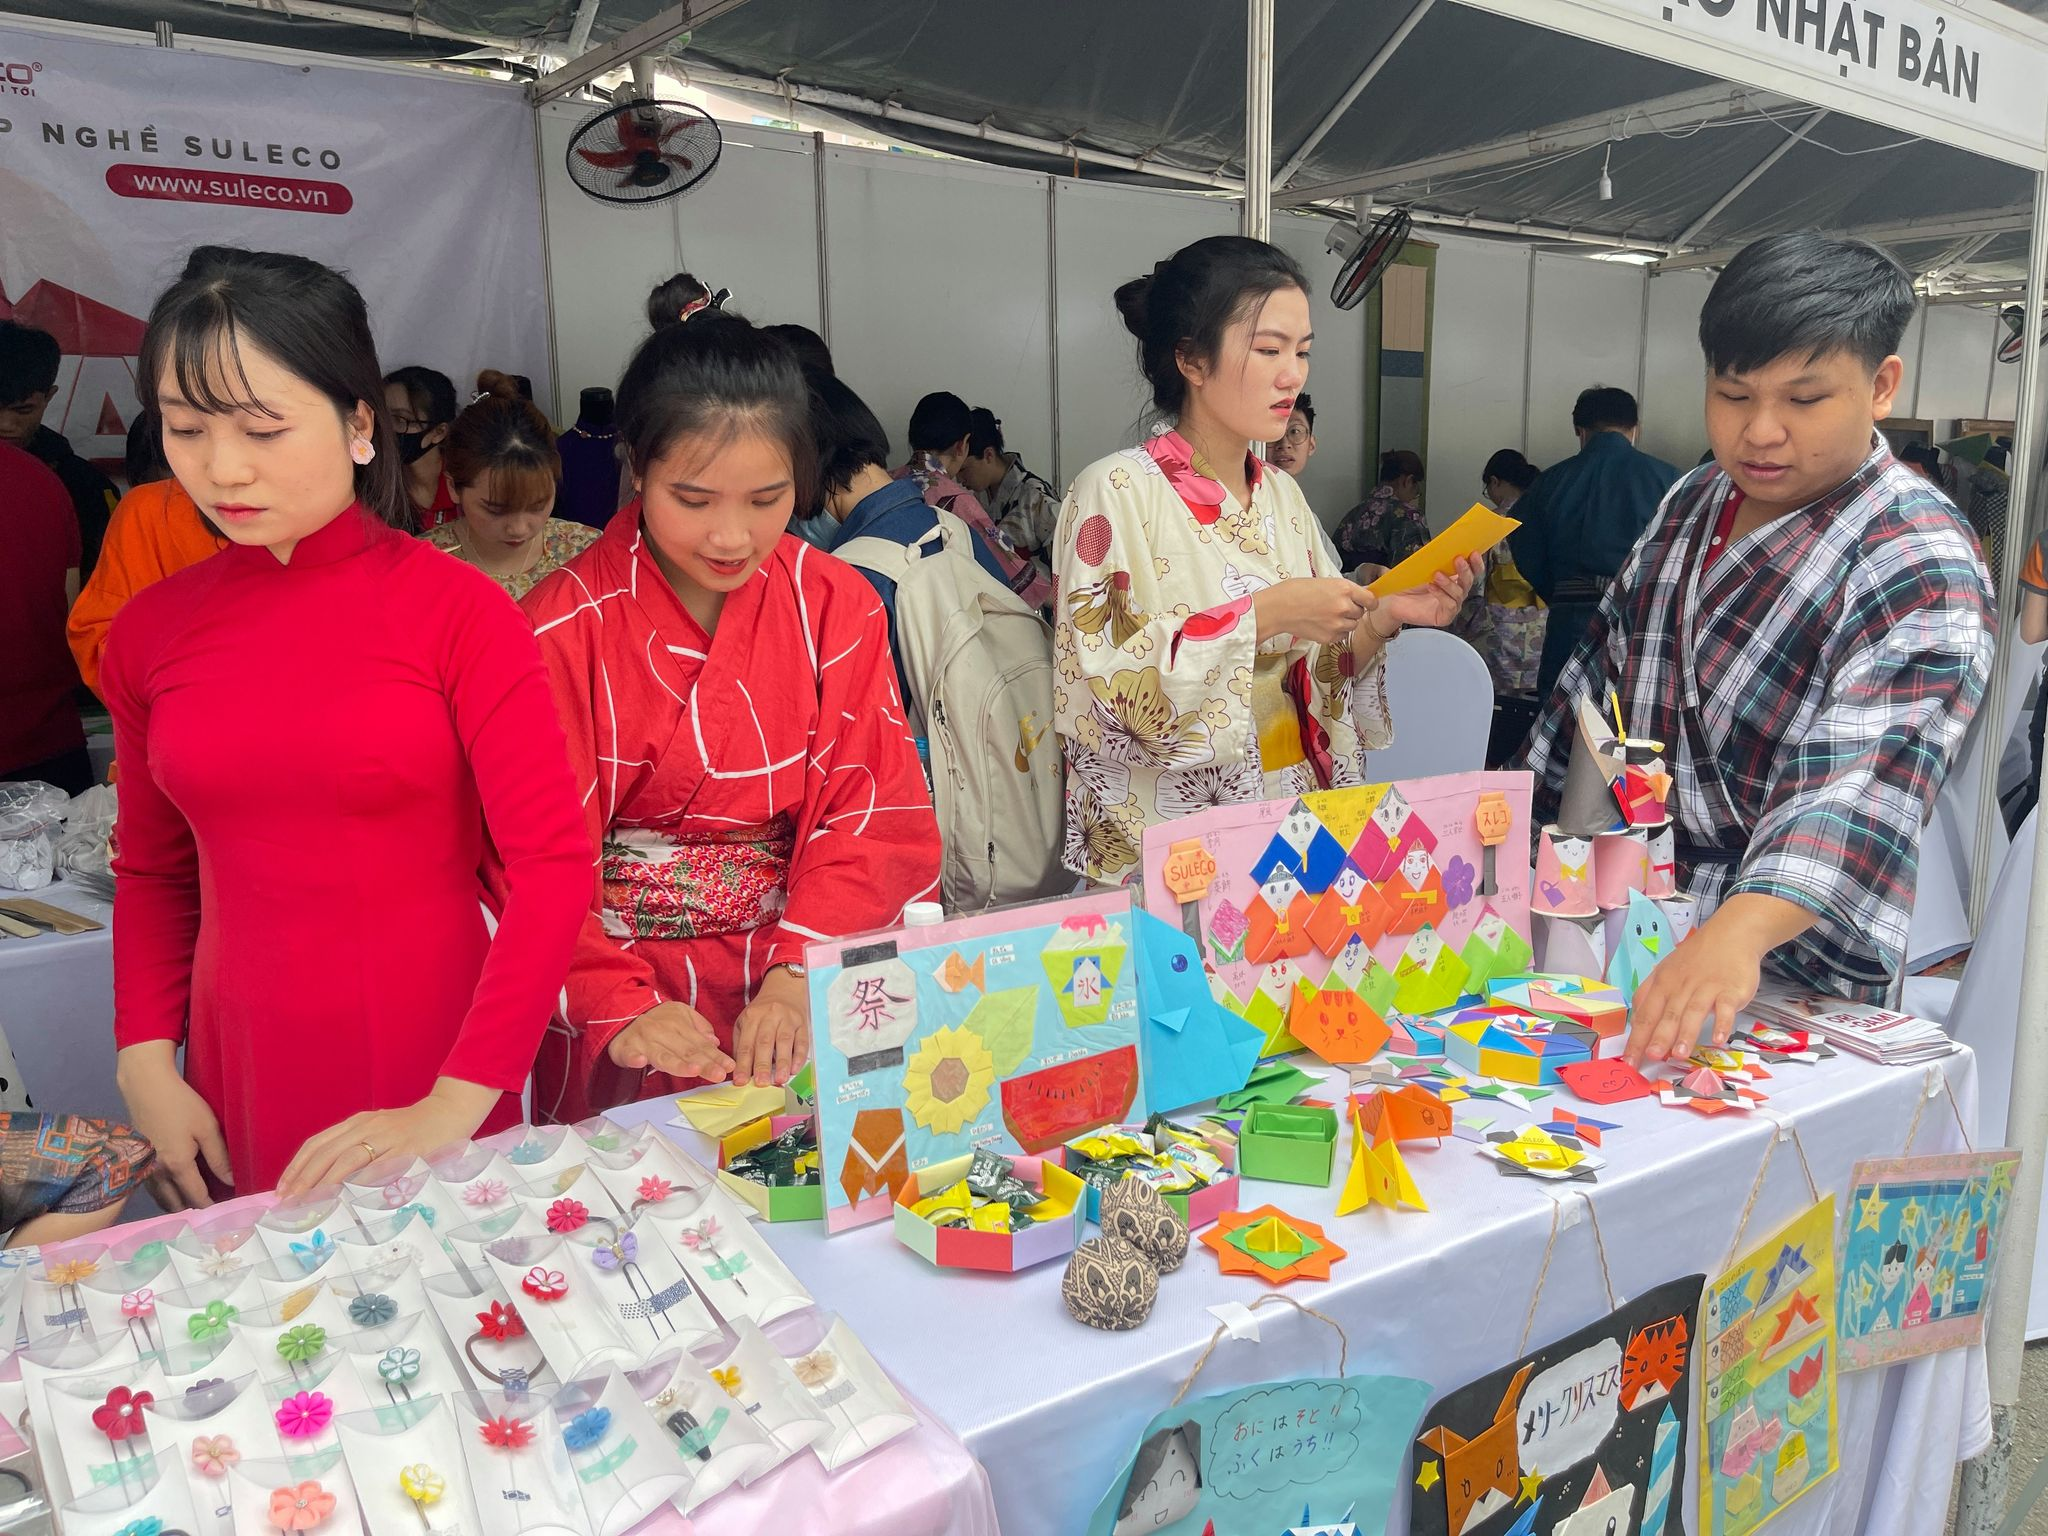 Paper craft products are displayed at a booth at the Japan Vietnam Festival in Ho Chi Minh City on April 17, 2021. Photo: Dong Nguyen / Tuoi Tre News